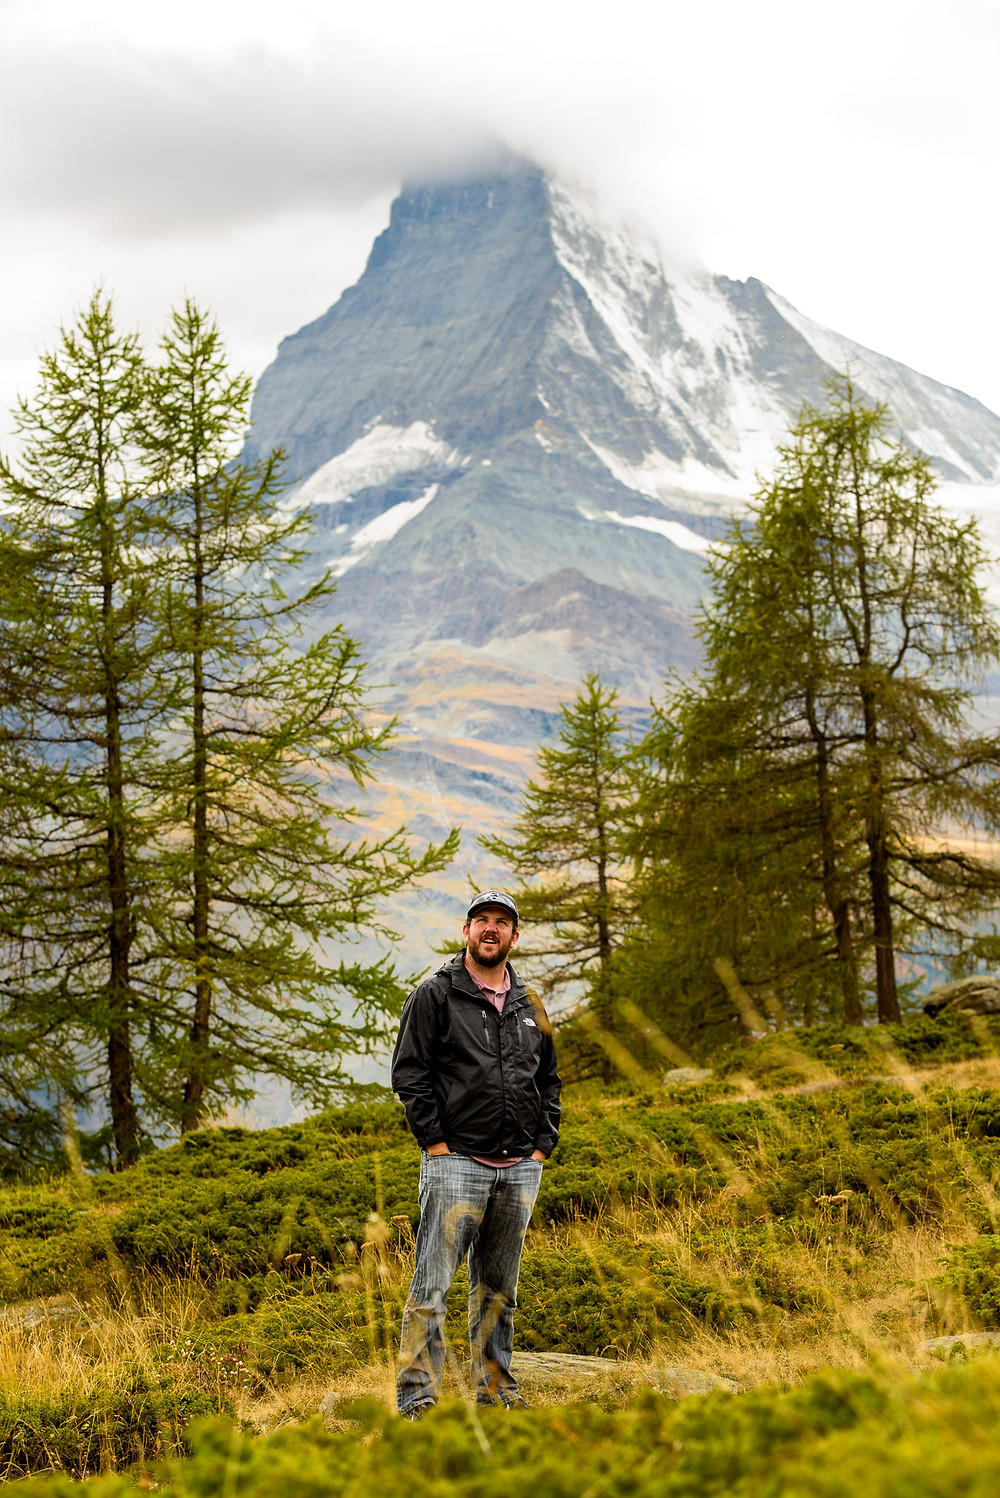 Alec in front of the Matterhorn